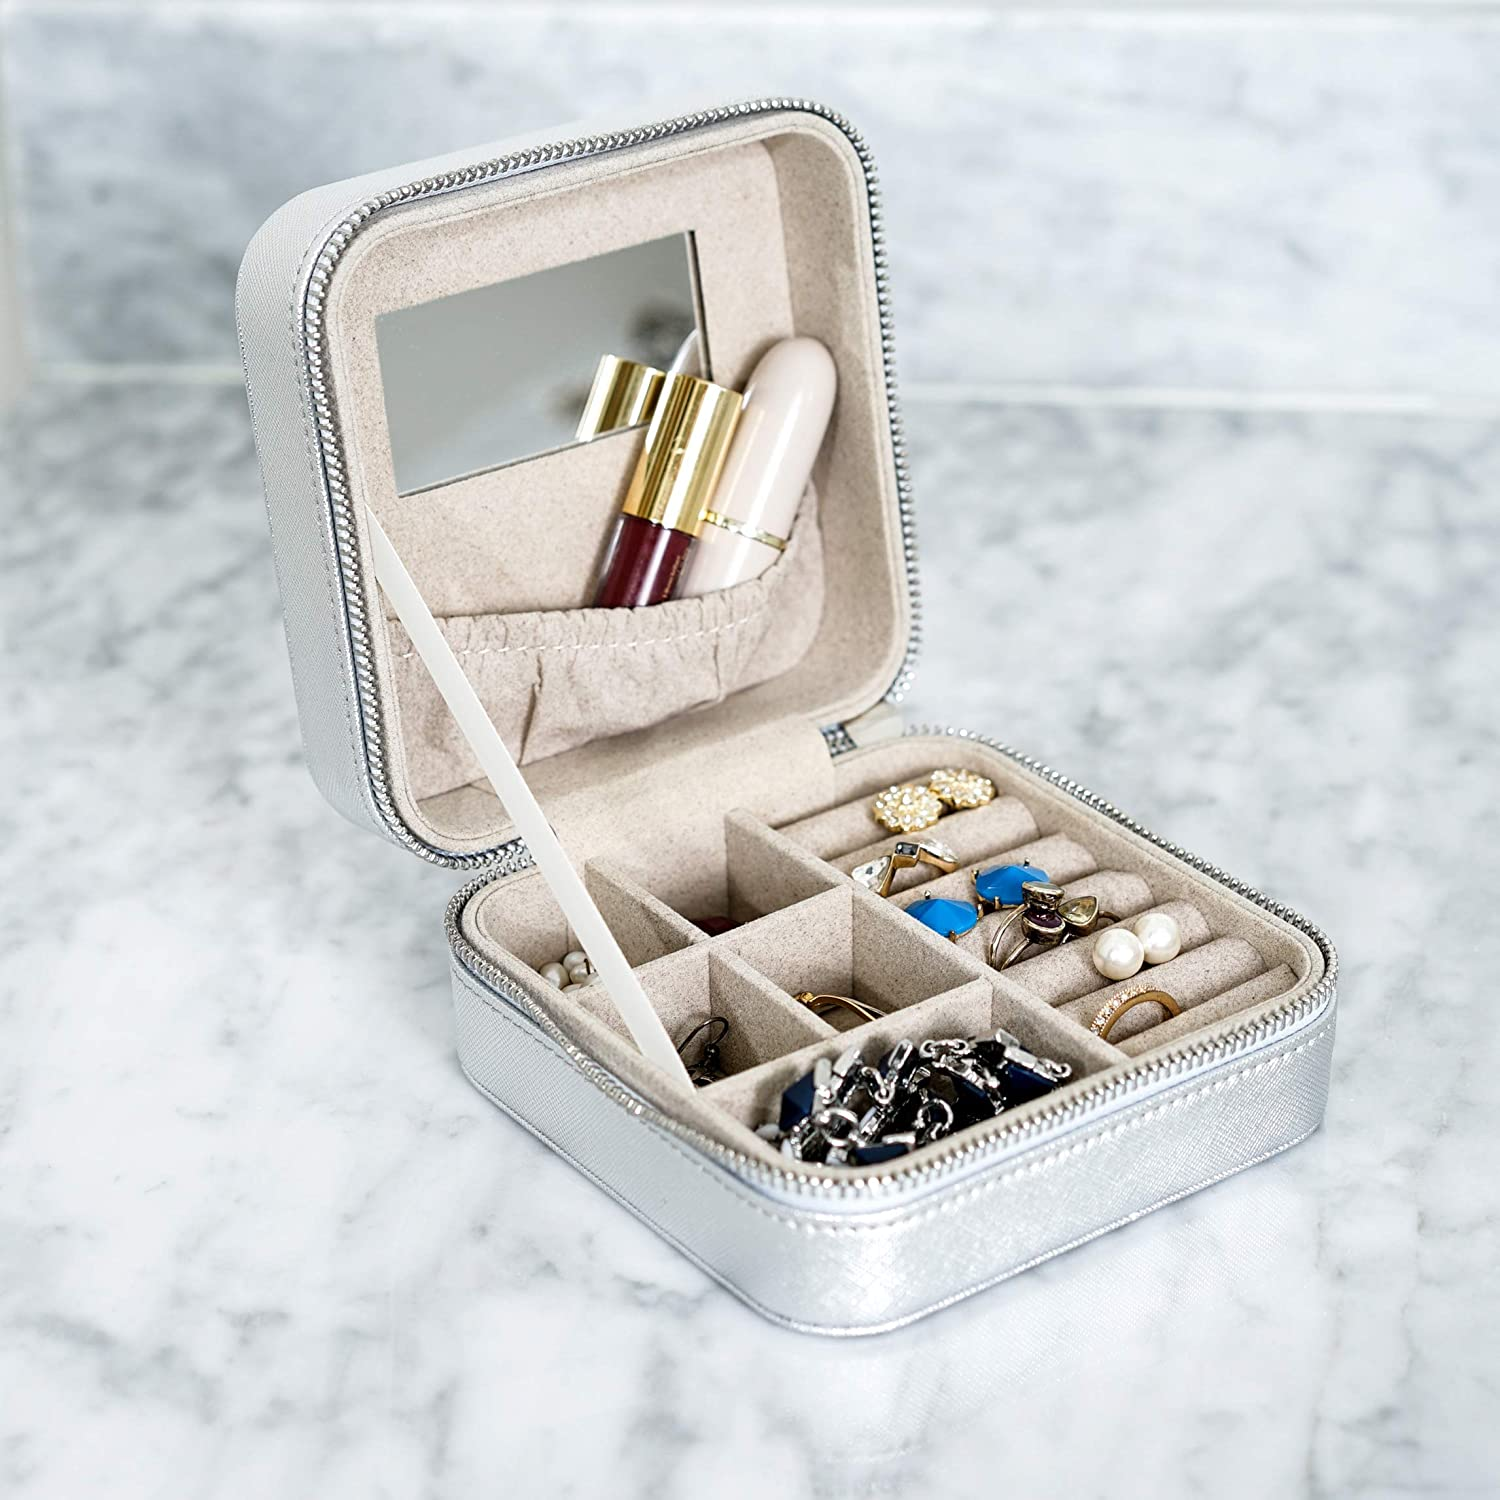 Hives and Honey Silver Metallic Jewelry Travel Case